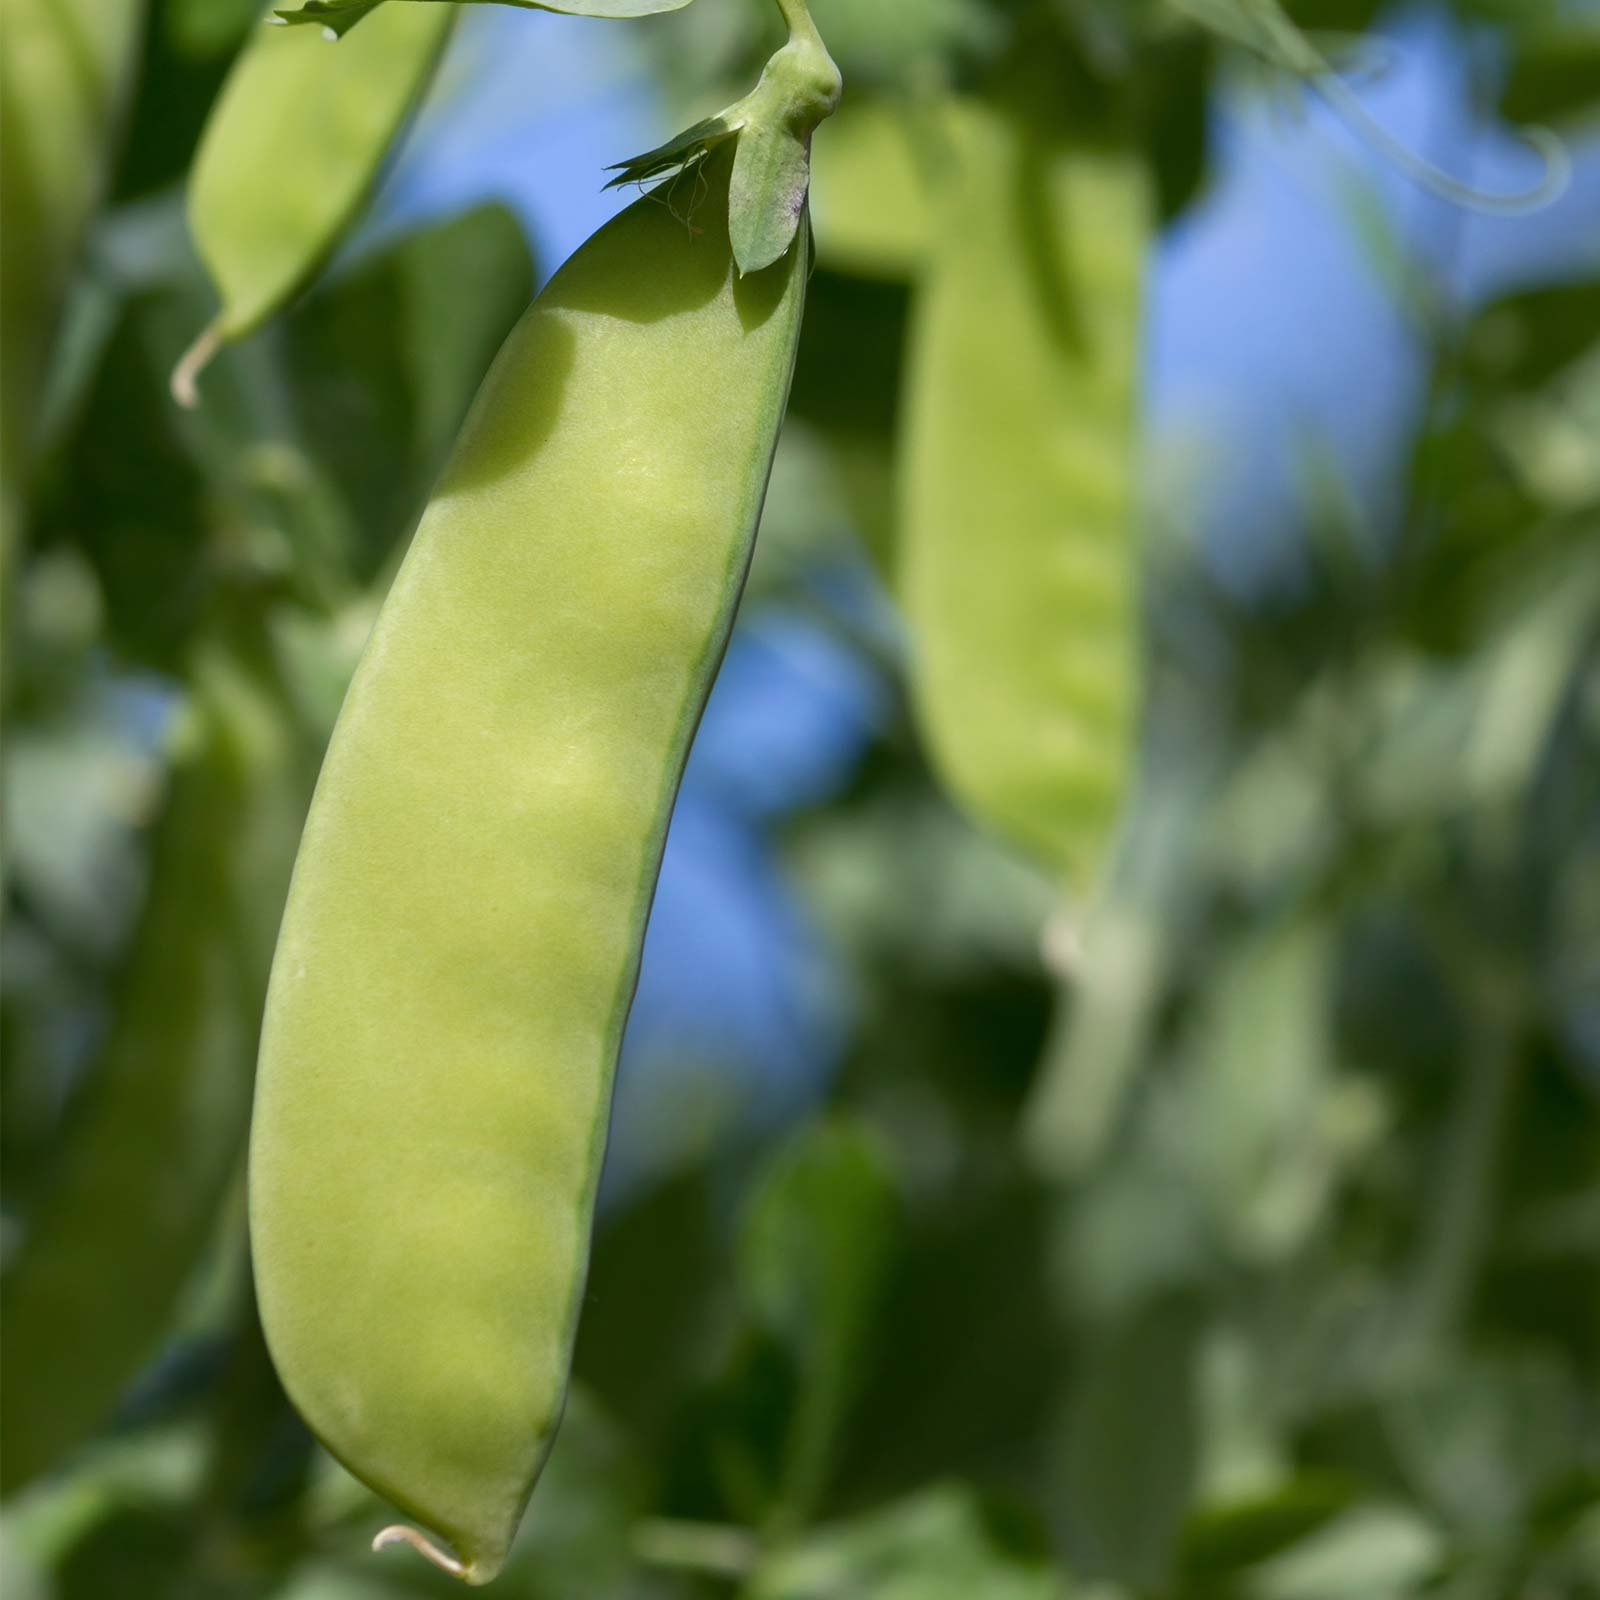 Oregon Giant Snow Pea Garden Seeds - 50 Lbs Bulk - Non-GMO, Heirloom Vegetable Gardening Seed